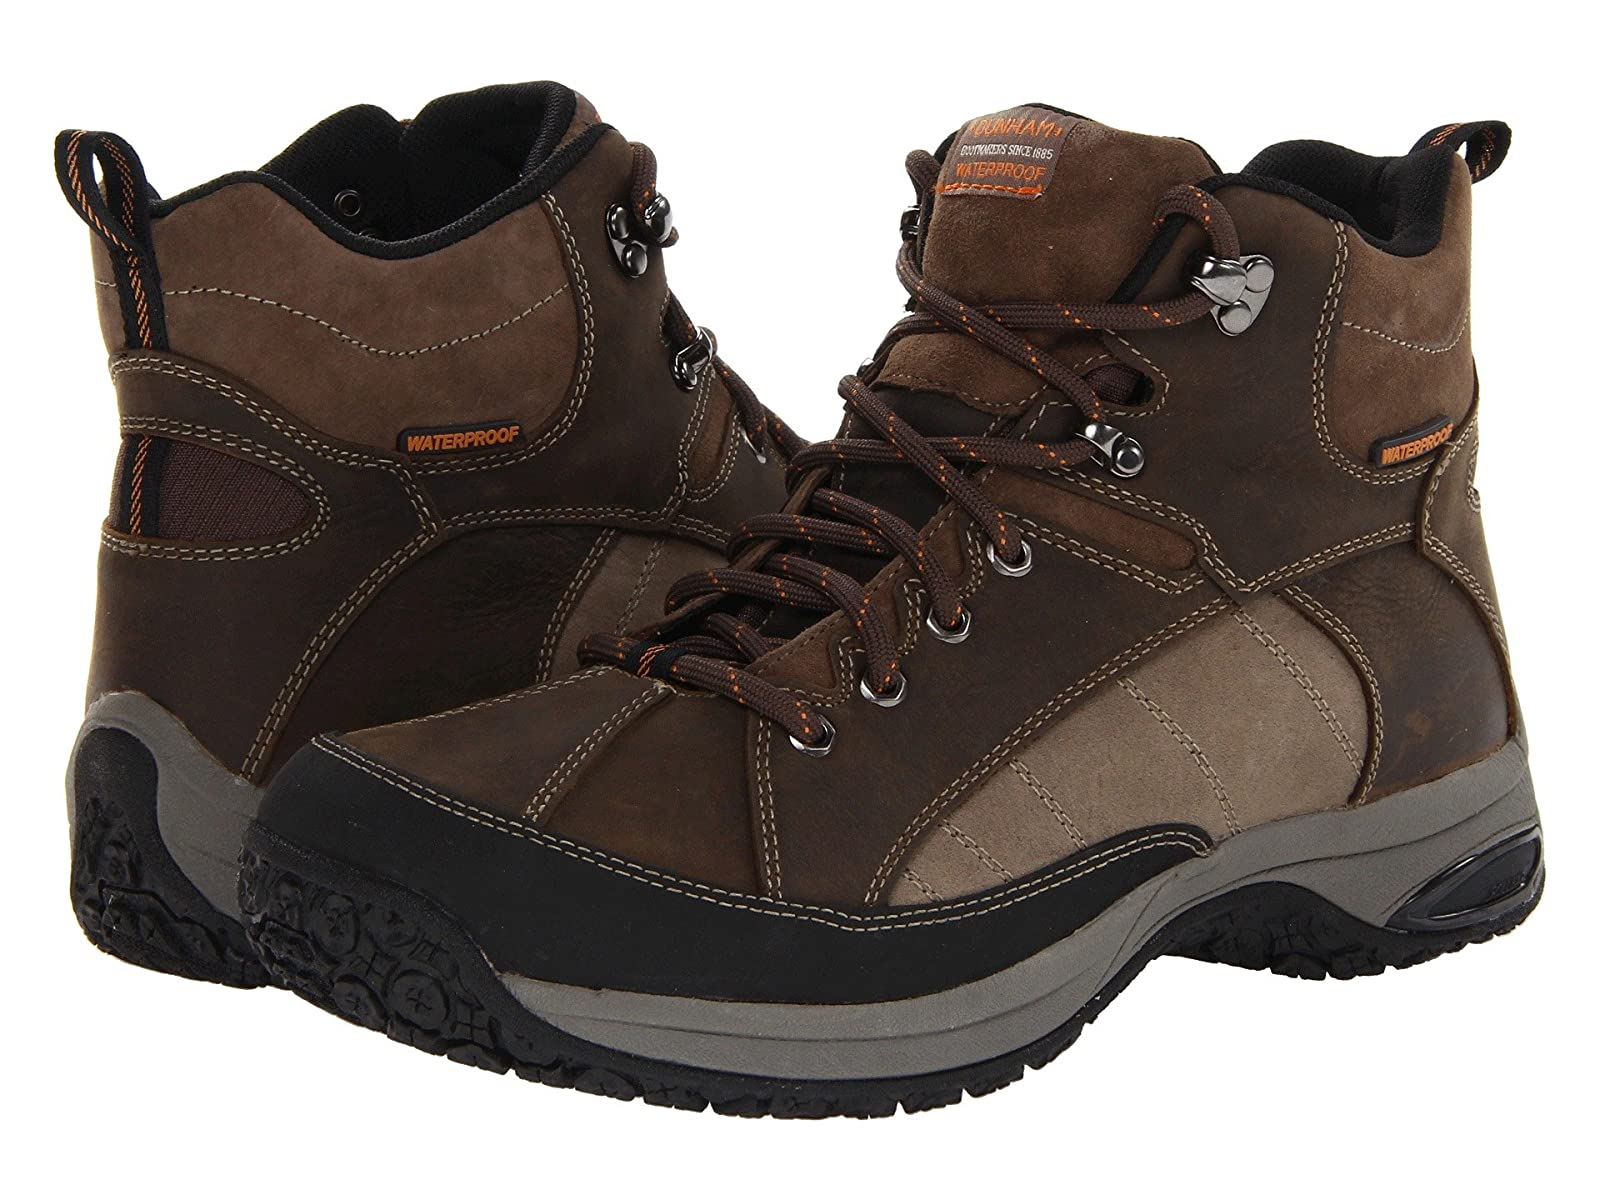 Dunham Lawrence Mudguard Sport Hiker WaterproofAffordable and distinctive shoes